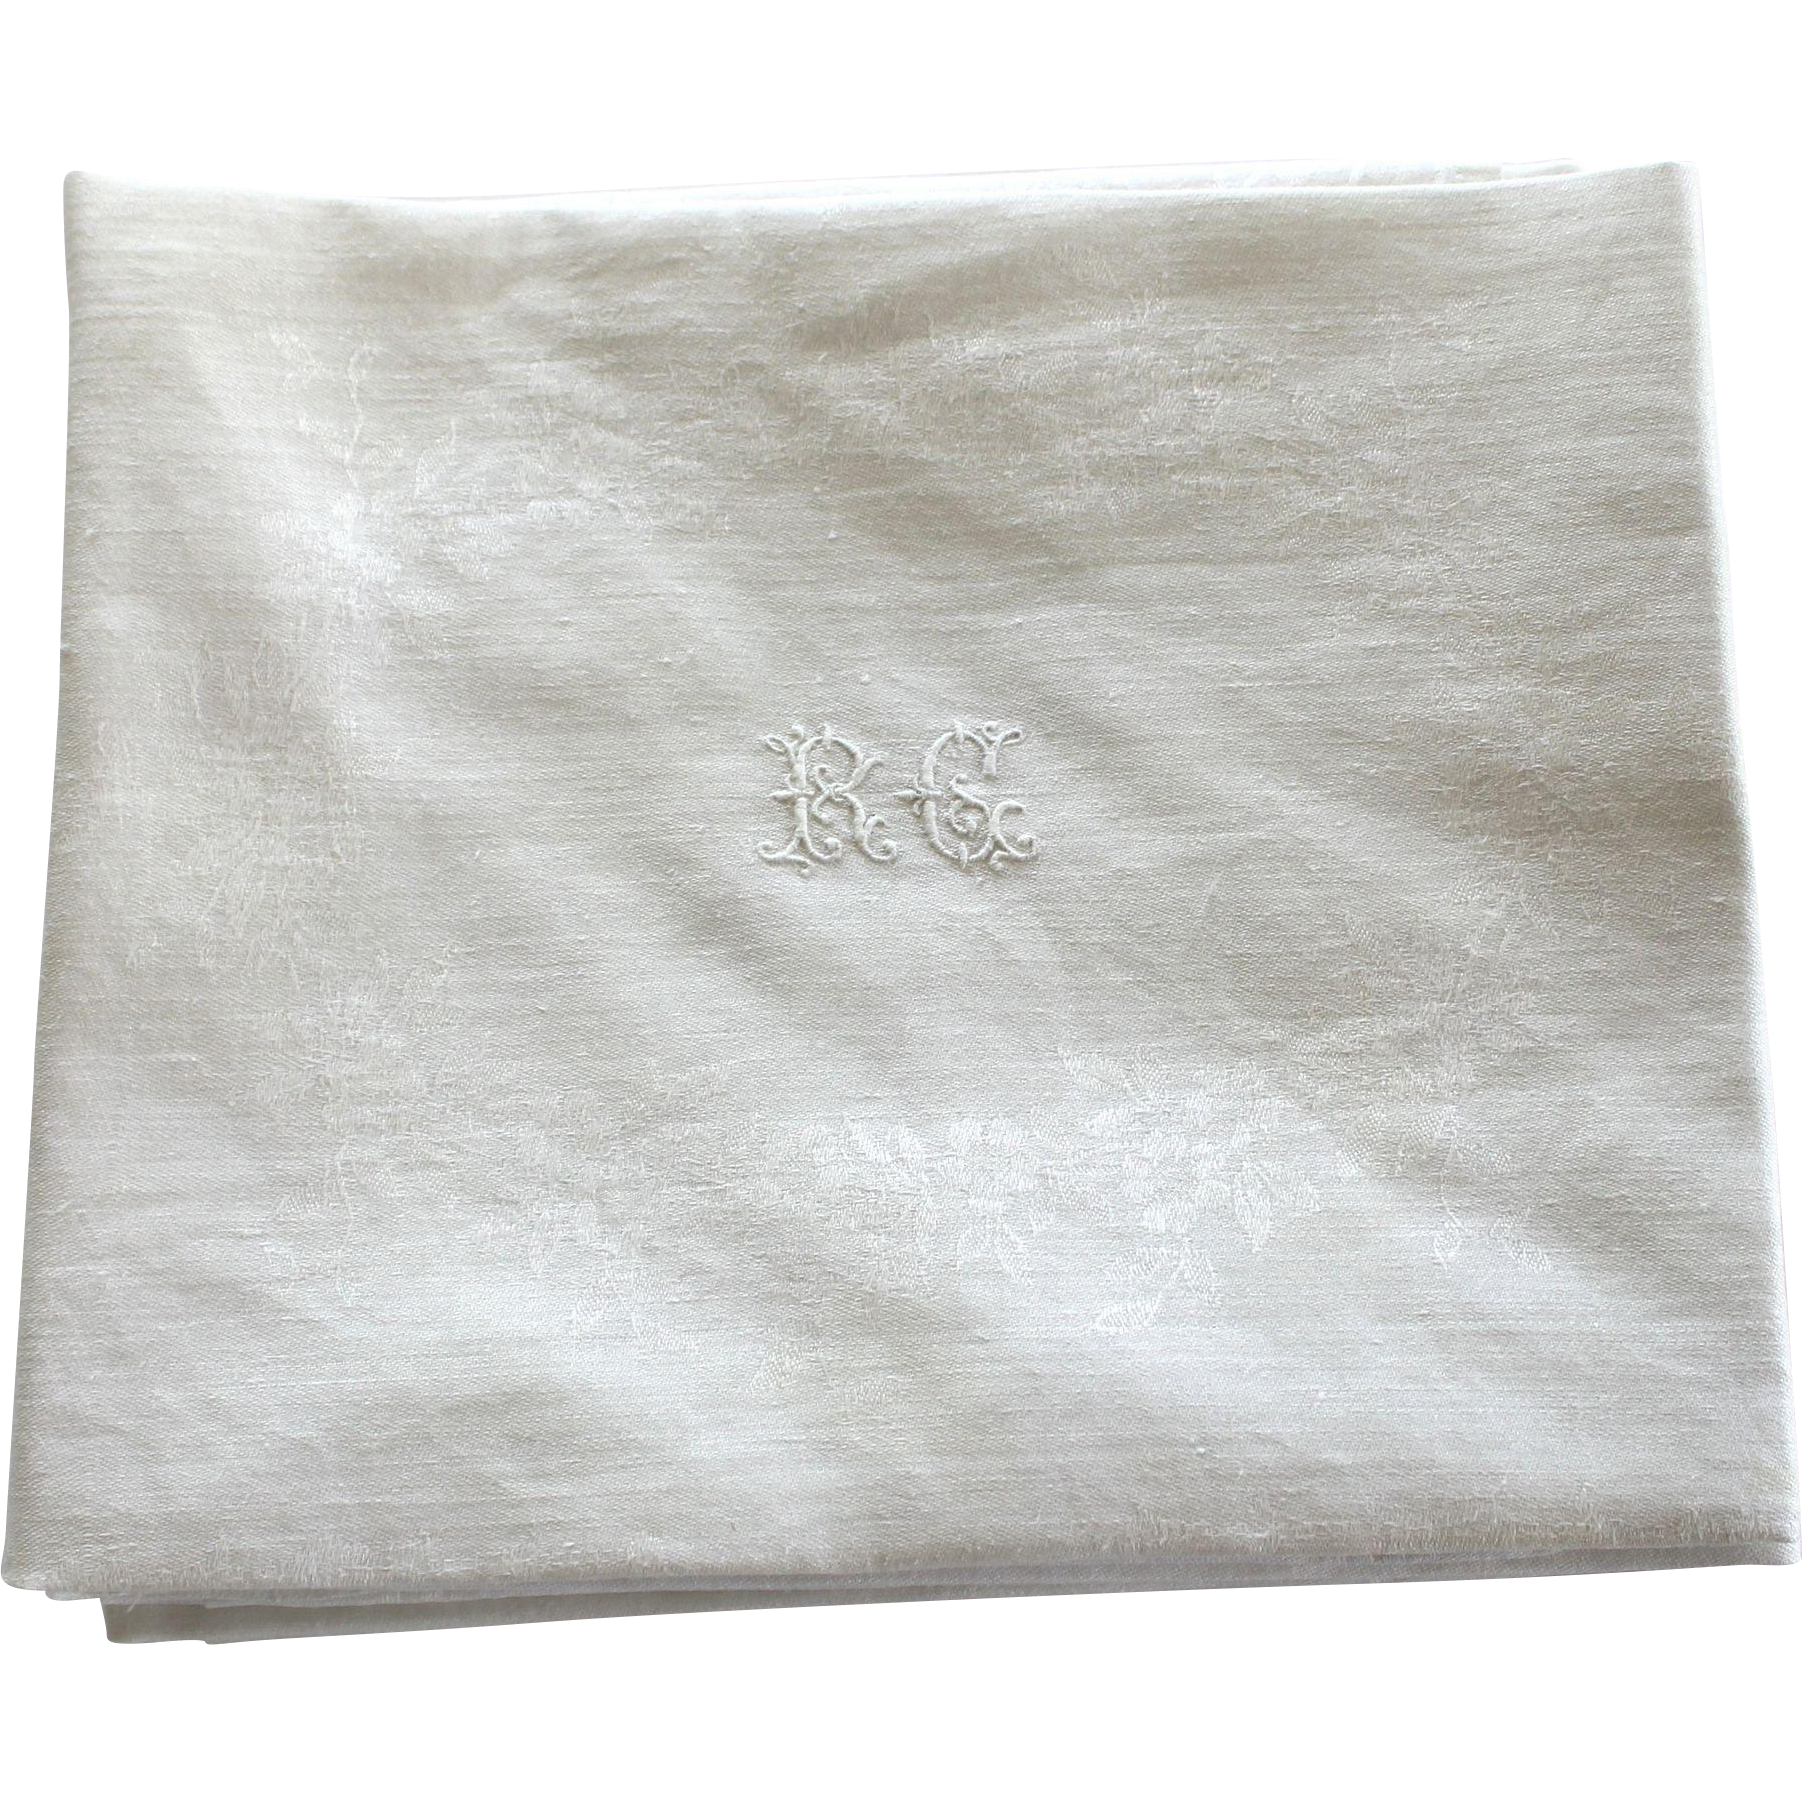 12 antique french linen monogrammed napkins r c - Linen Monogrammed Napkins